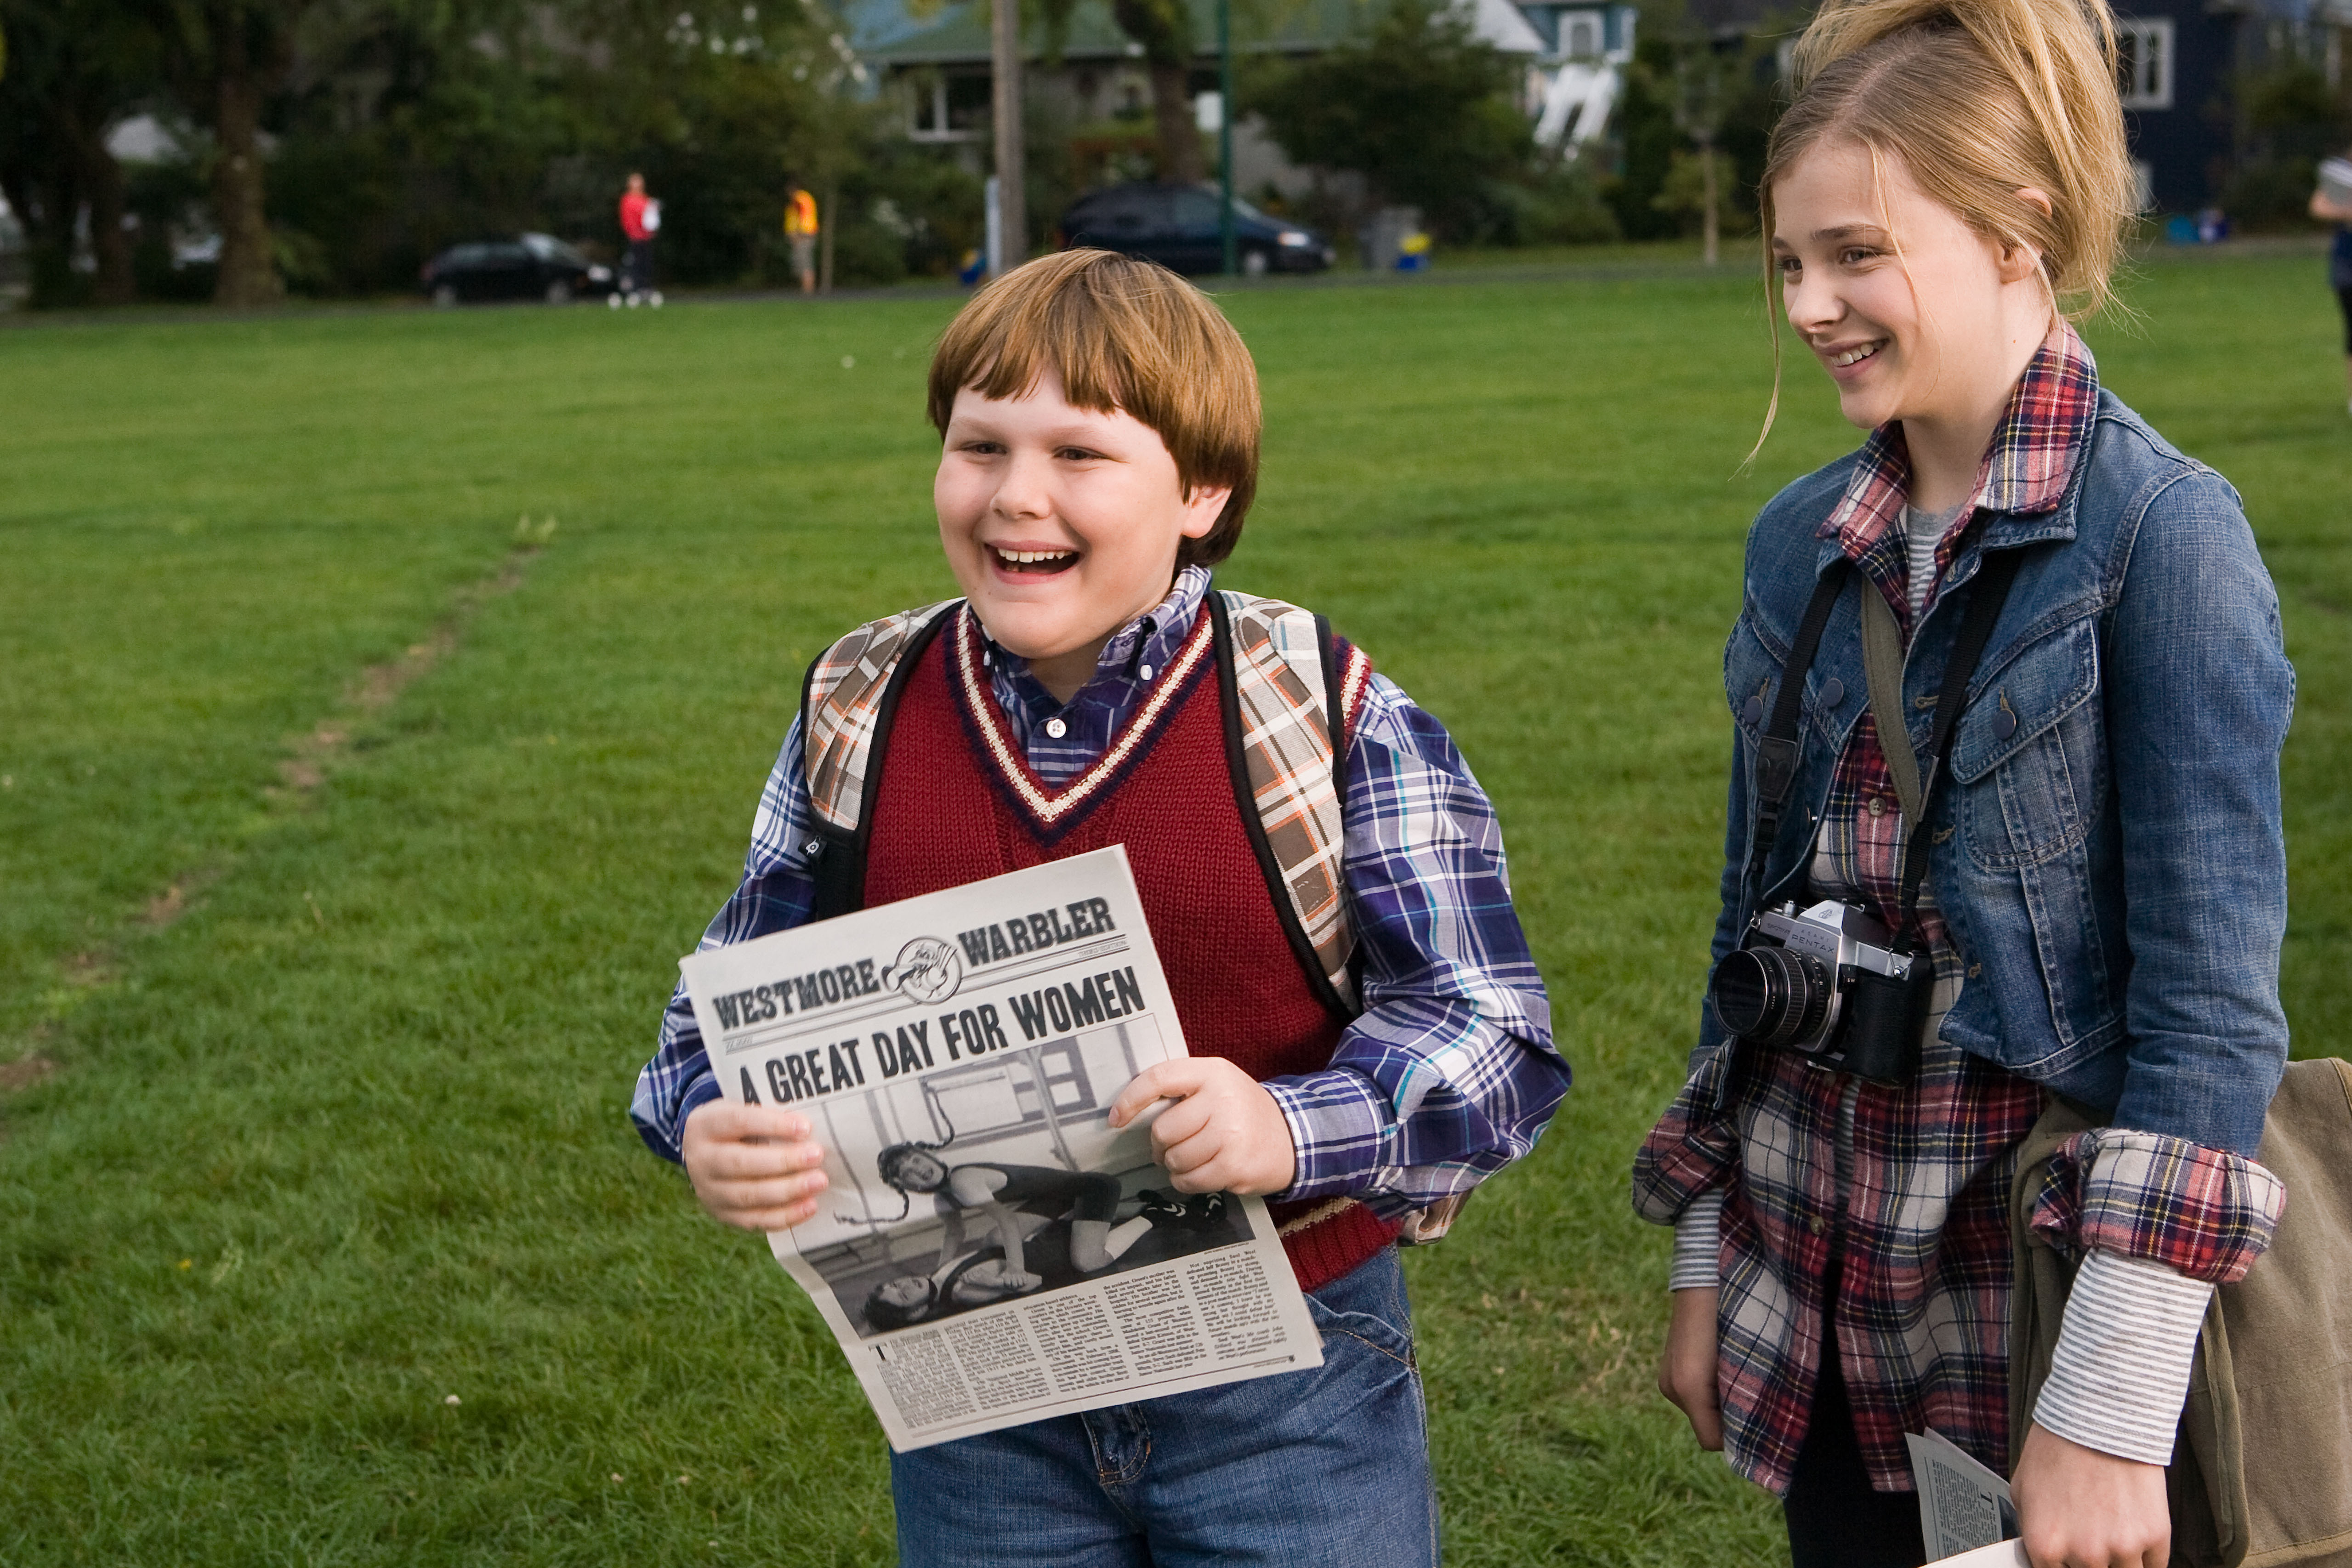 brand new trailer poster and images for diary of a wimpy